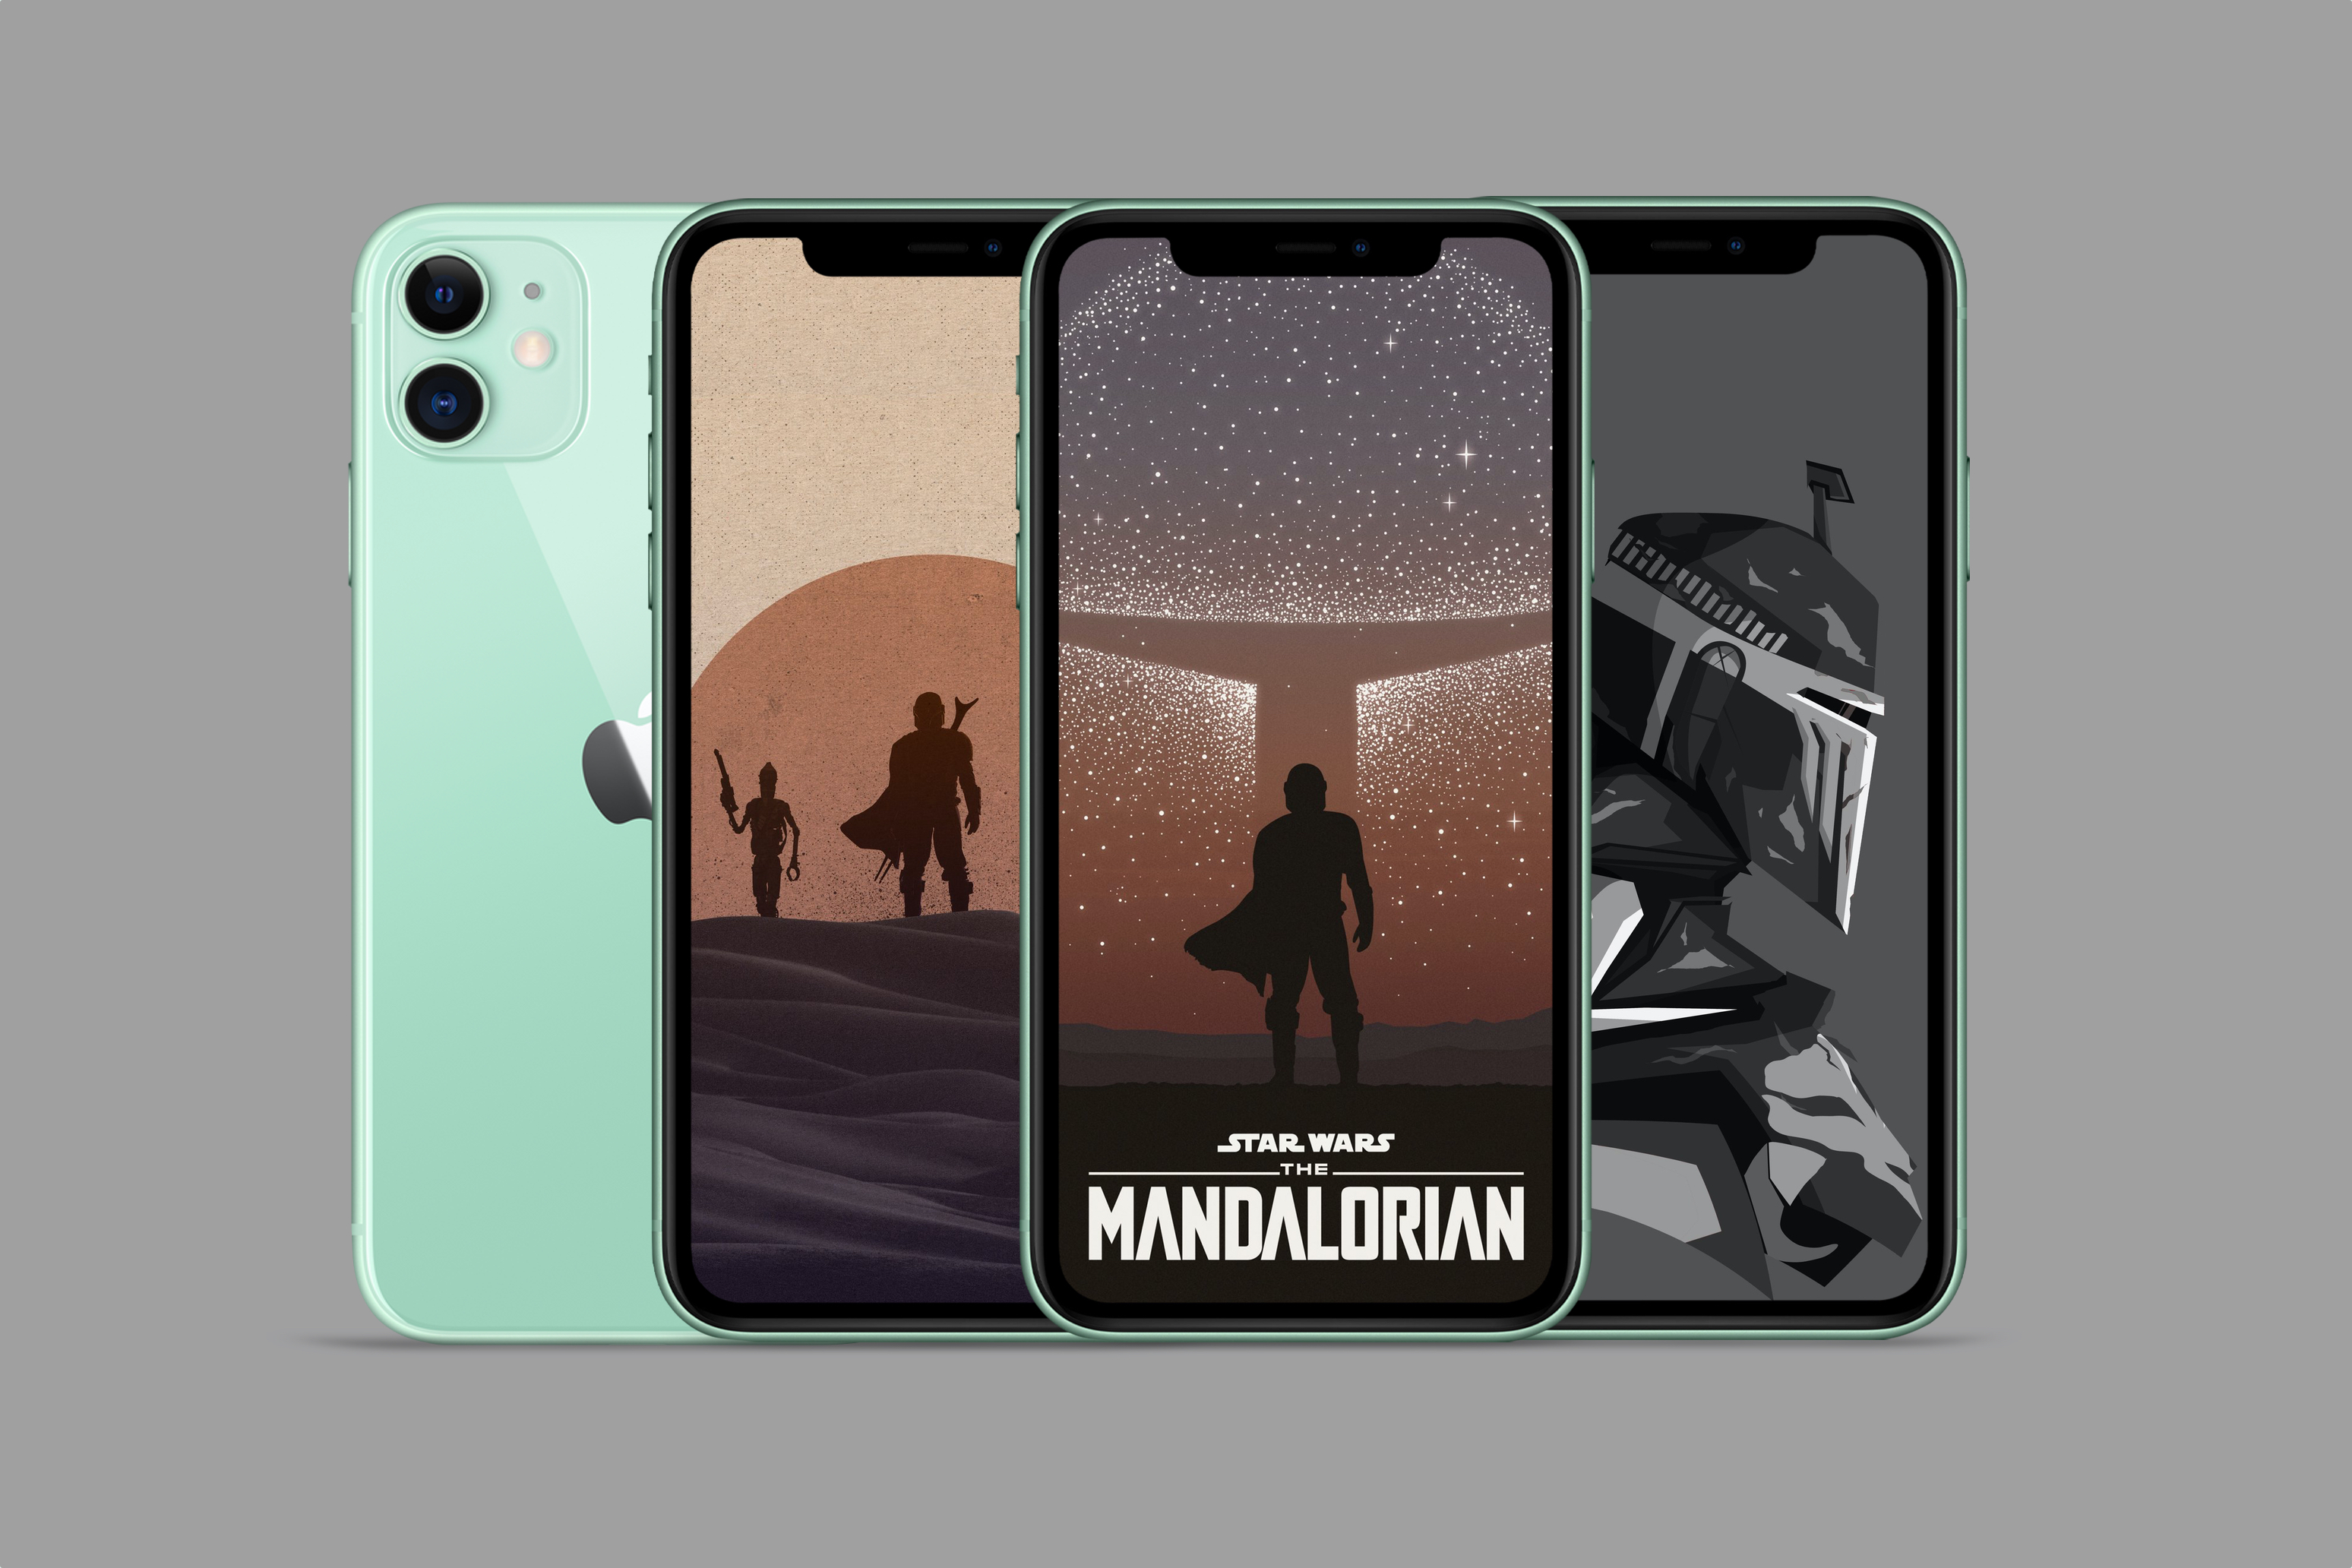 Disney Star Wars Mandalorian iPhone Wallpaper mockup